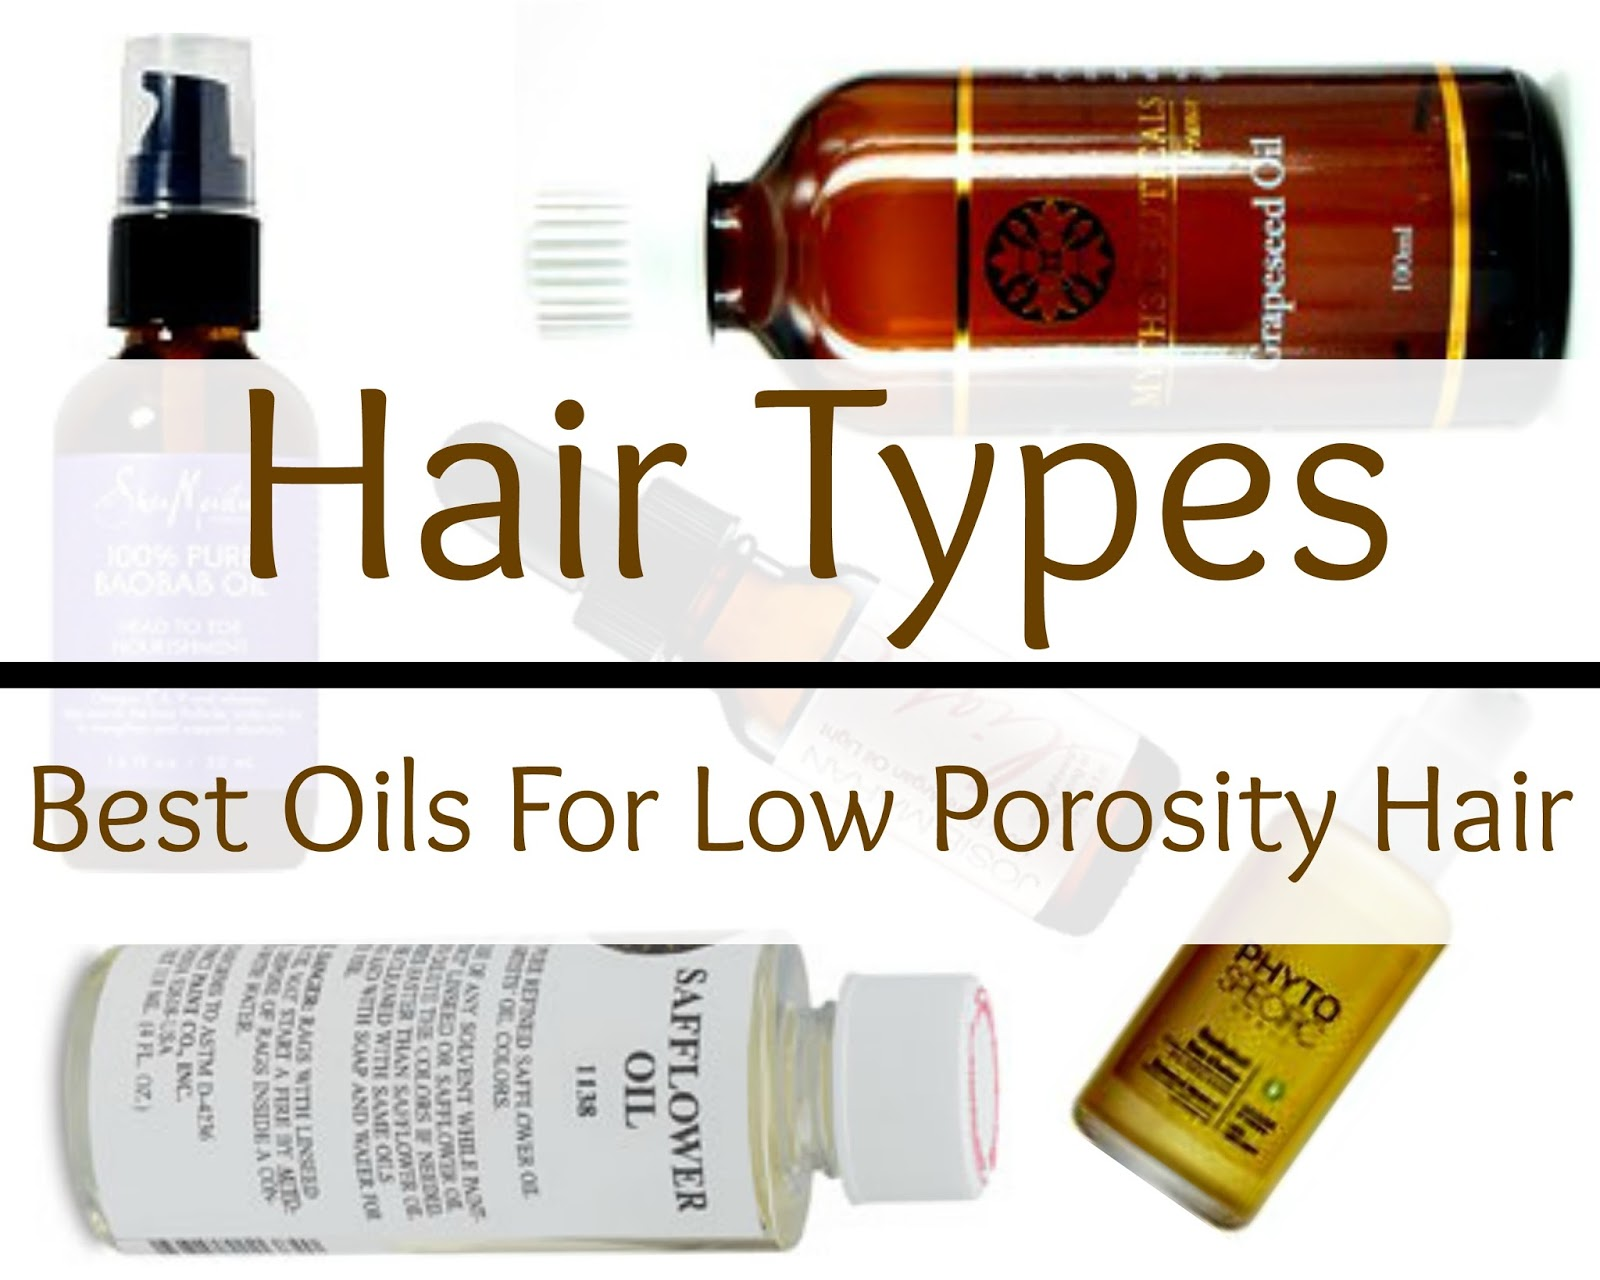 Learn what low porosity hair is, what oils are best and why certain products work best for this hair type. Hair Porosity is important Naturals!